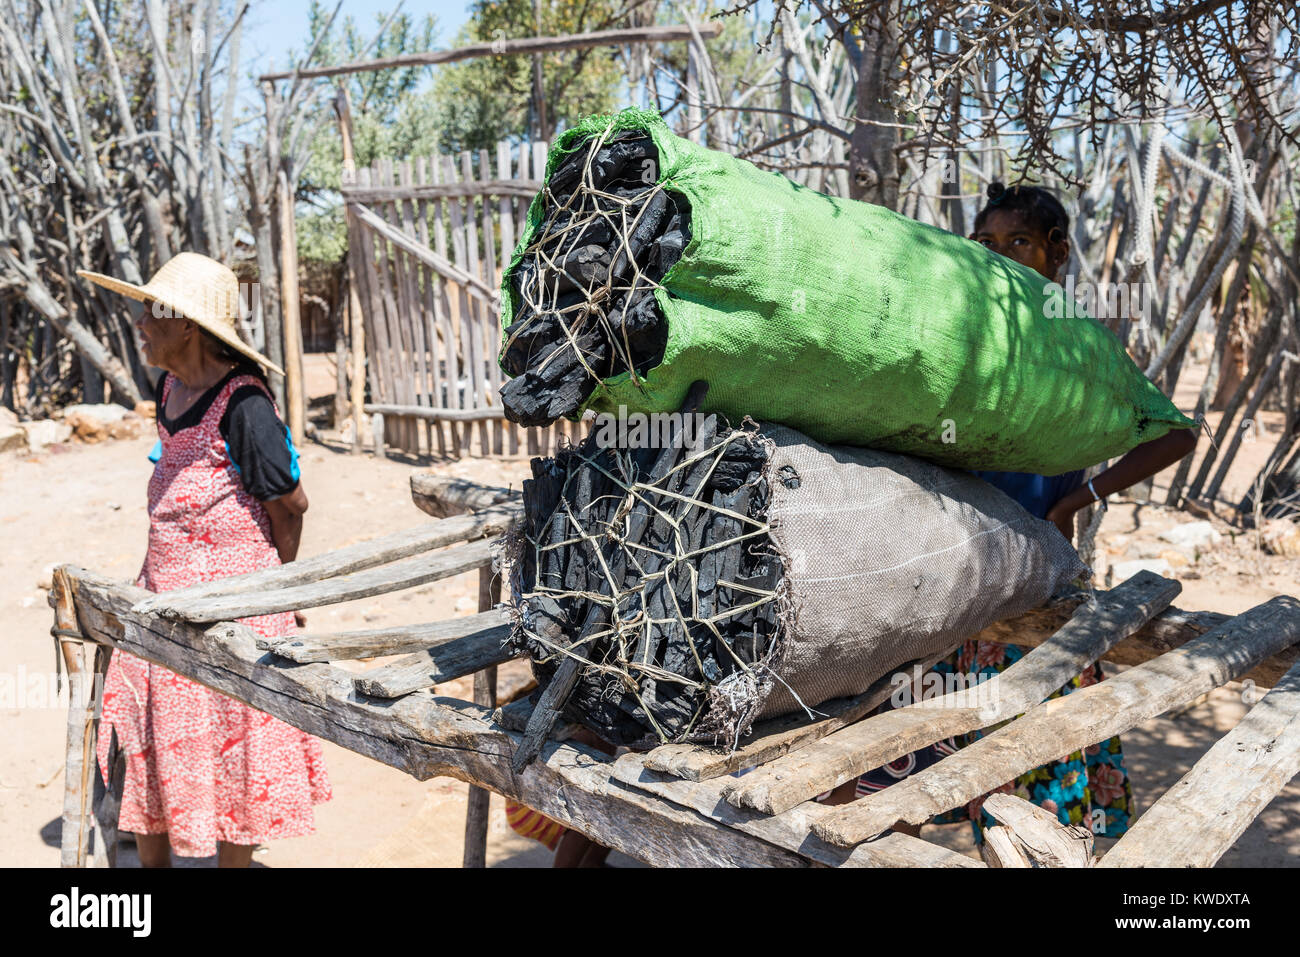 Sacks full of charcoal are for sell for fuel at a roadside stand. Madagascar, Africa. - Stock Image